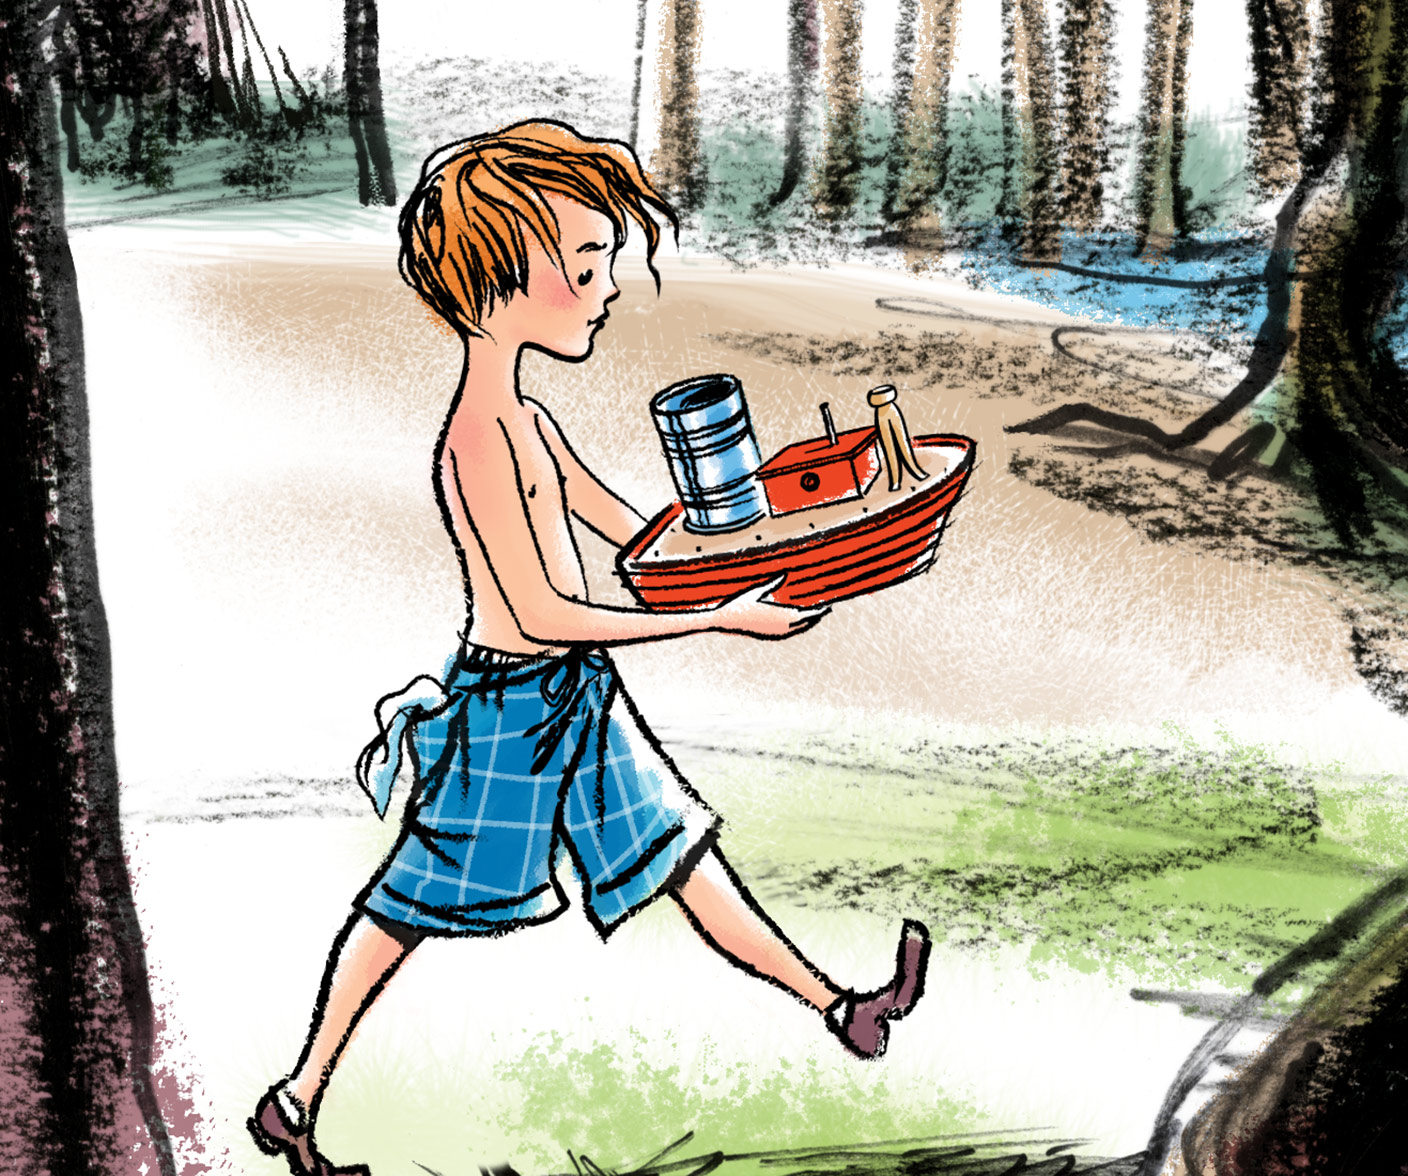 (DETAIL VIEW) a preliminary test illustration (character study) for  The Friend Ship , a new picture book story written by Steven Salerno, which depicts little Mike bringing the wooden toy boat (that his Grampy made for him) to the stream nearby…